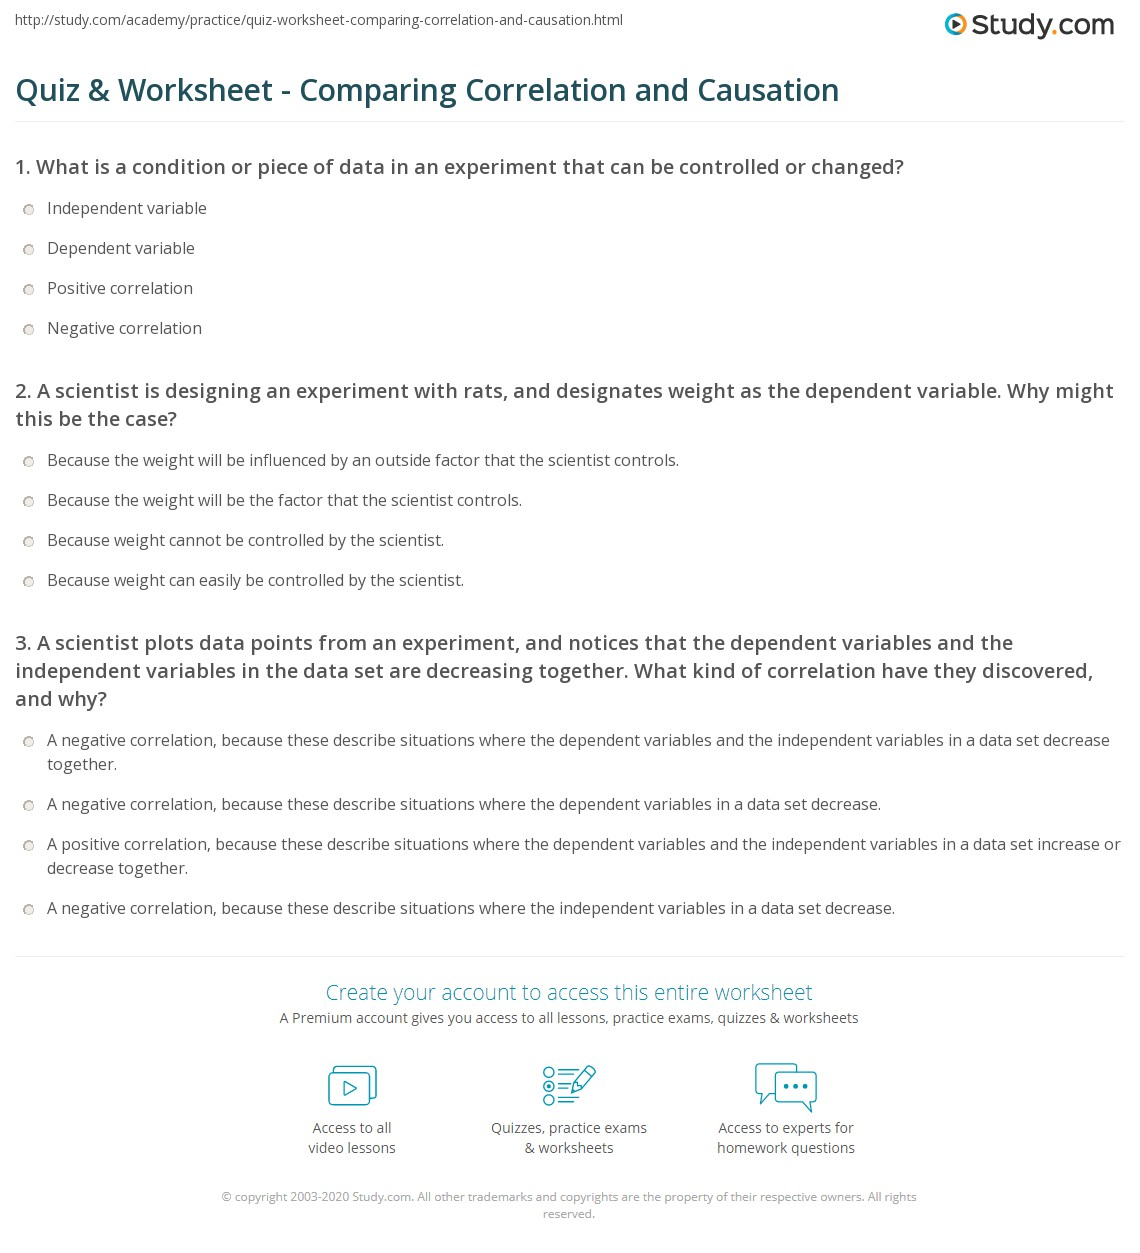 Aldiablosus  Surprising Quiz Amp Worksheet  Comparing Correlation And Causation  Studycom With Marvelous Print Correlation Vs Causation Differences Amp Definition Worksheet With Delightful Printable English Worksheet Also Free French Worksheets Printable In Addition Greater Than Less Than Fractions Worksheet And Numbers To  Worksheets As Well As Handwriting Worksheets For Preschoolers Free Additionally Preschool Letter Worksheets Alphabet From Studycom With Aldiablosus  Marvelous Quiz Amp Worksheet  Comparing Correlation And Causation  Studycom With Delightful Print Correlation Vs Causation Differences Amp Definition Worksheet And Surprising Printable English Worksheet Also Free French Worksheets Printable In Addition Greater Than Less Than Fractions Worksheet From Studycom